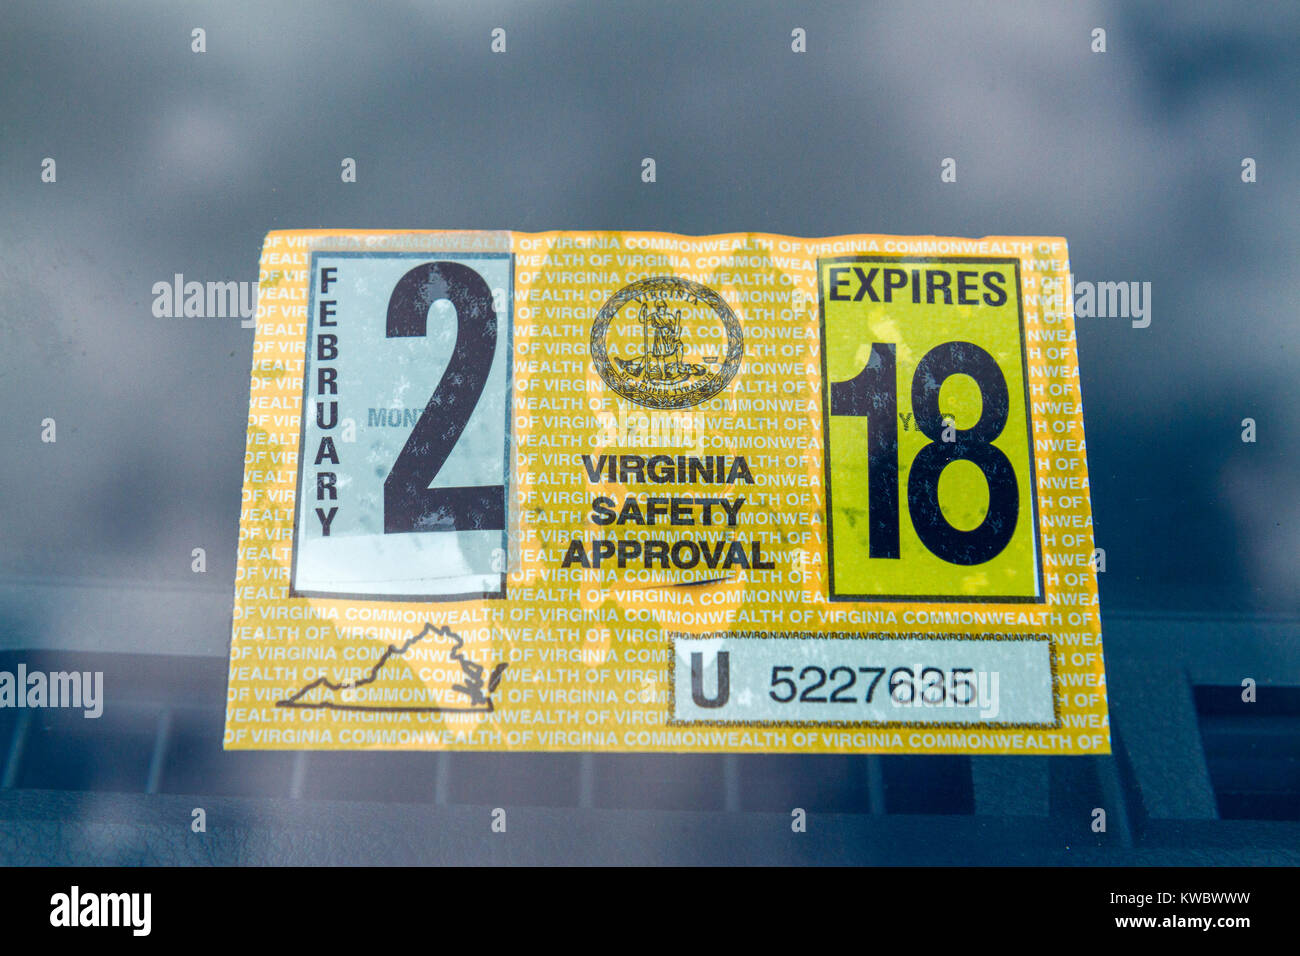 A Virginia Safety Approval Sticker From The Virginia Motor